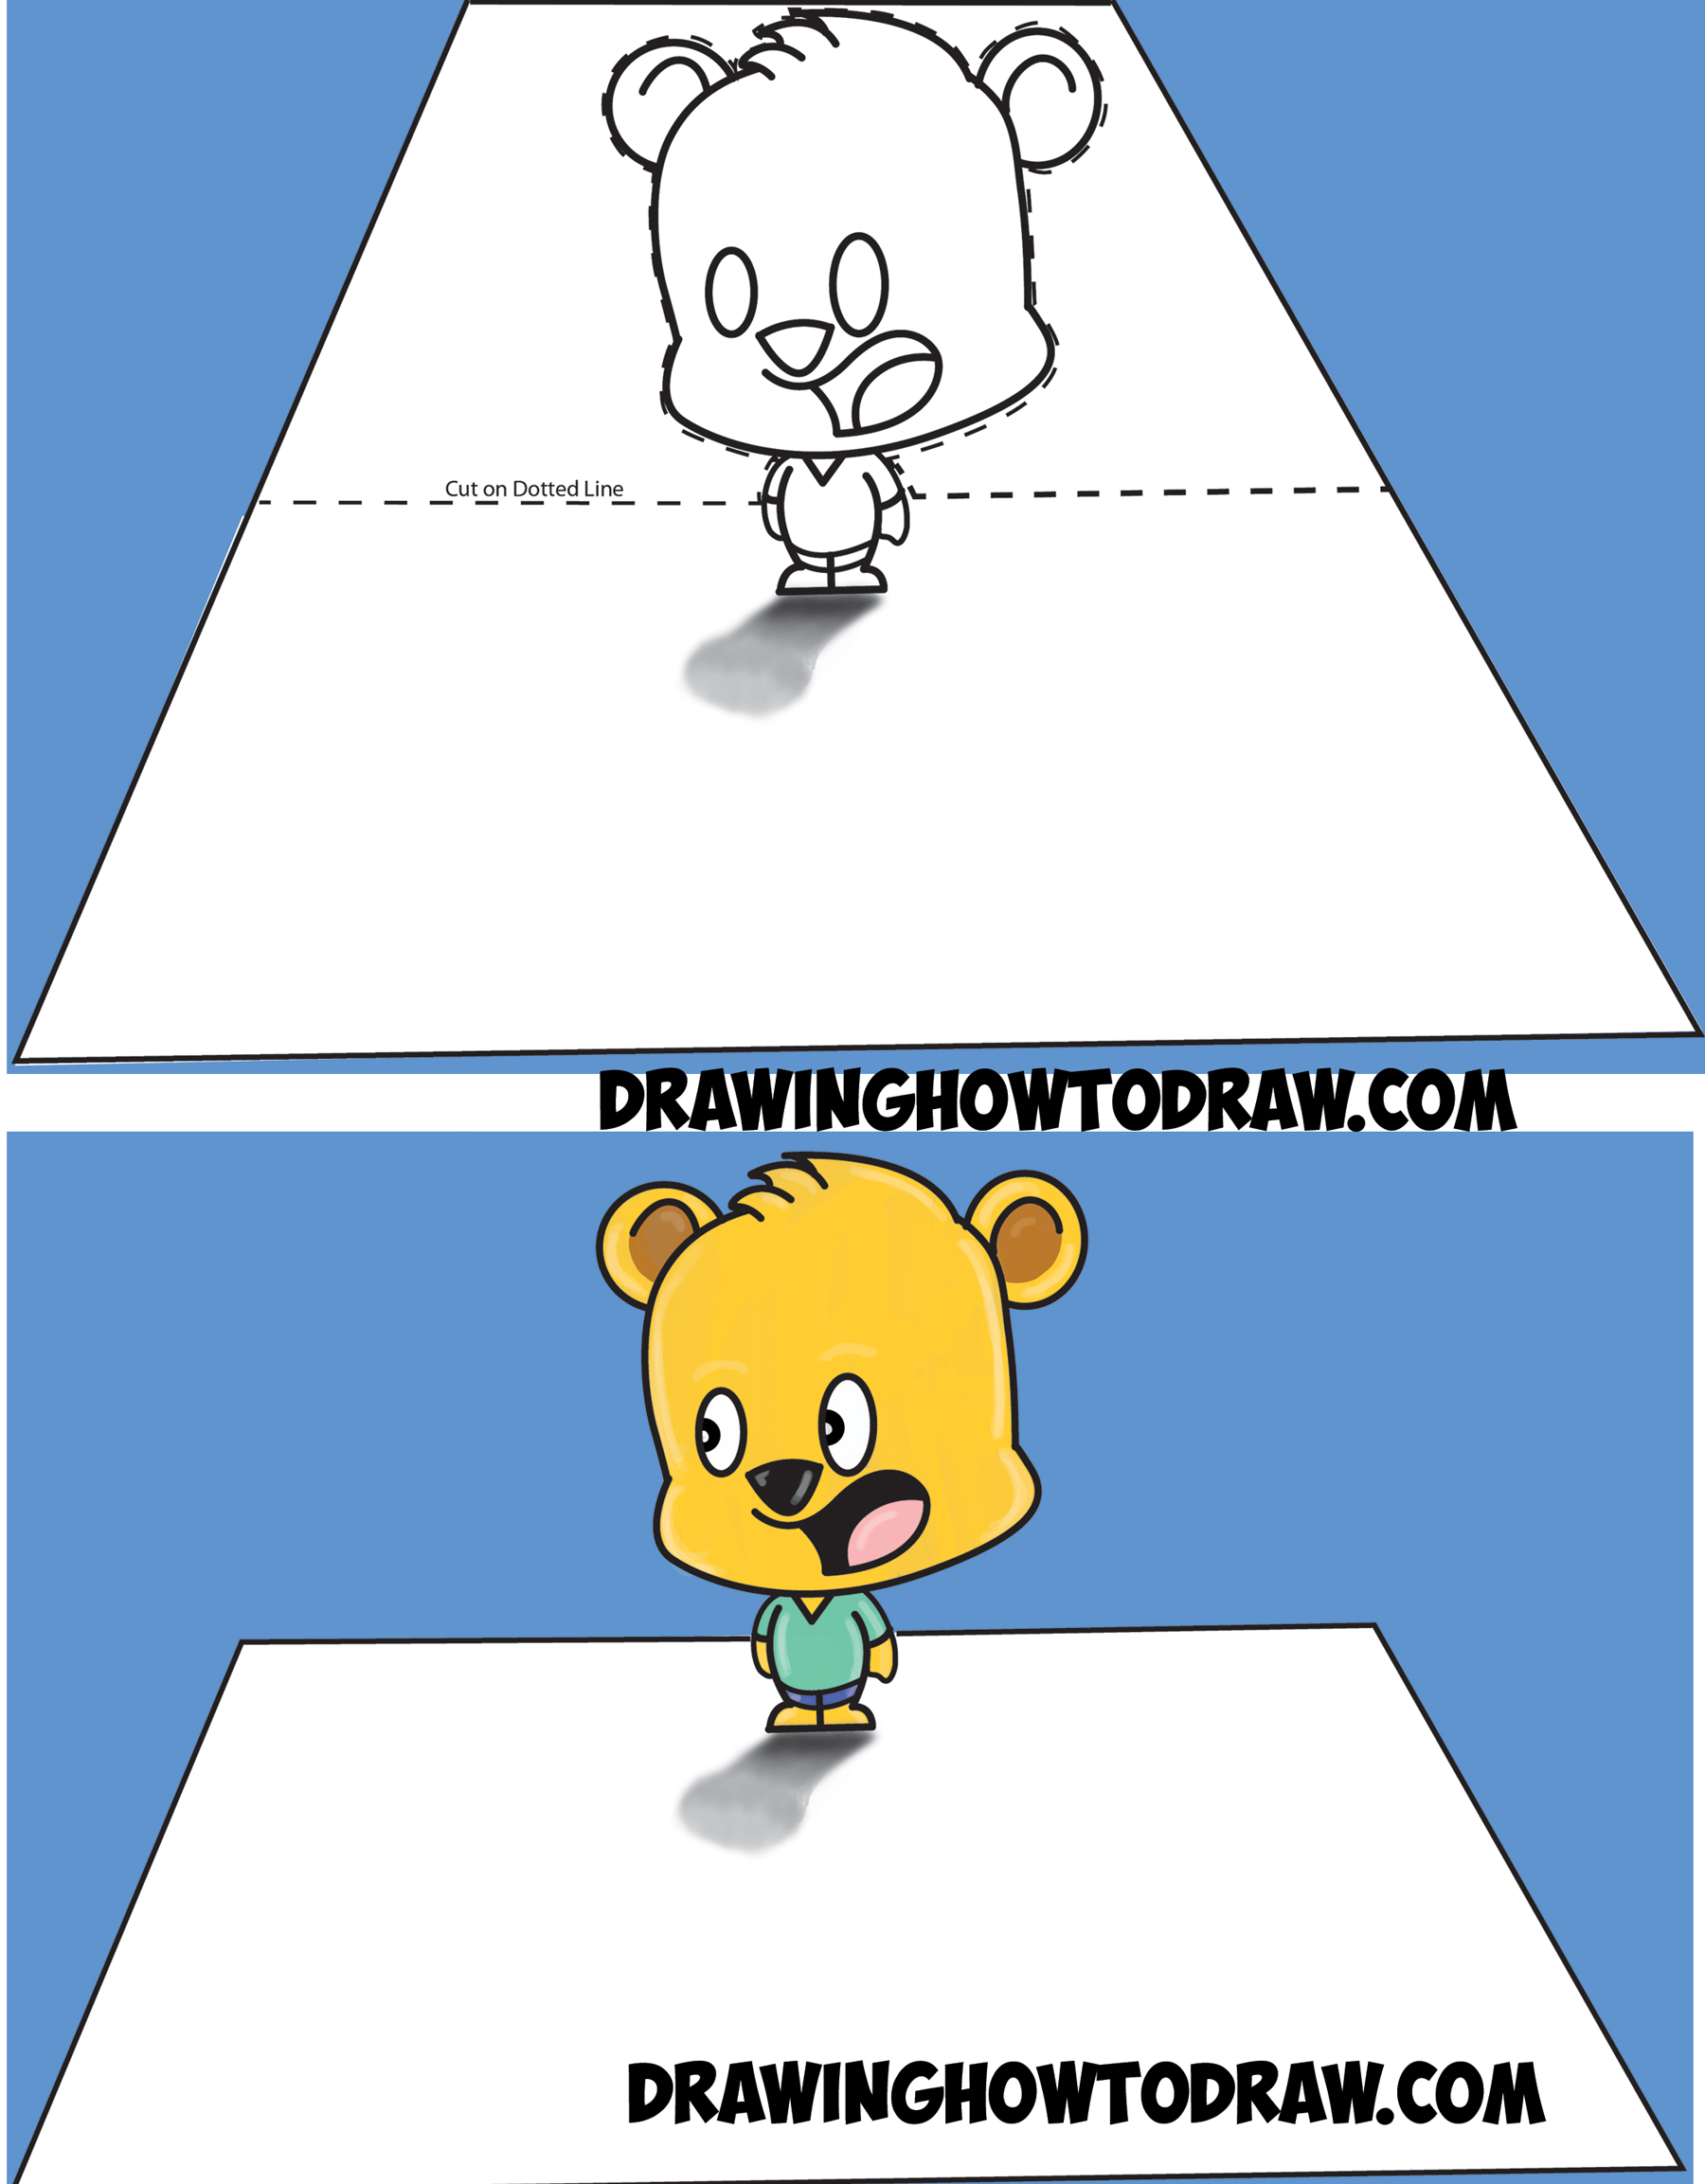 Learn how to draw 3 dimensional cartoon bear standing on top of piece of paper